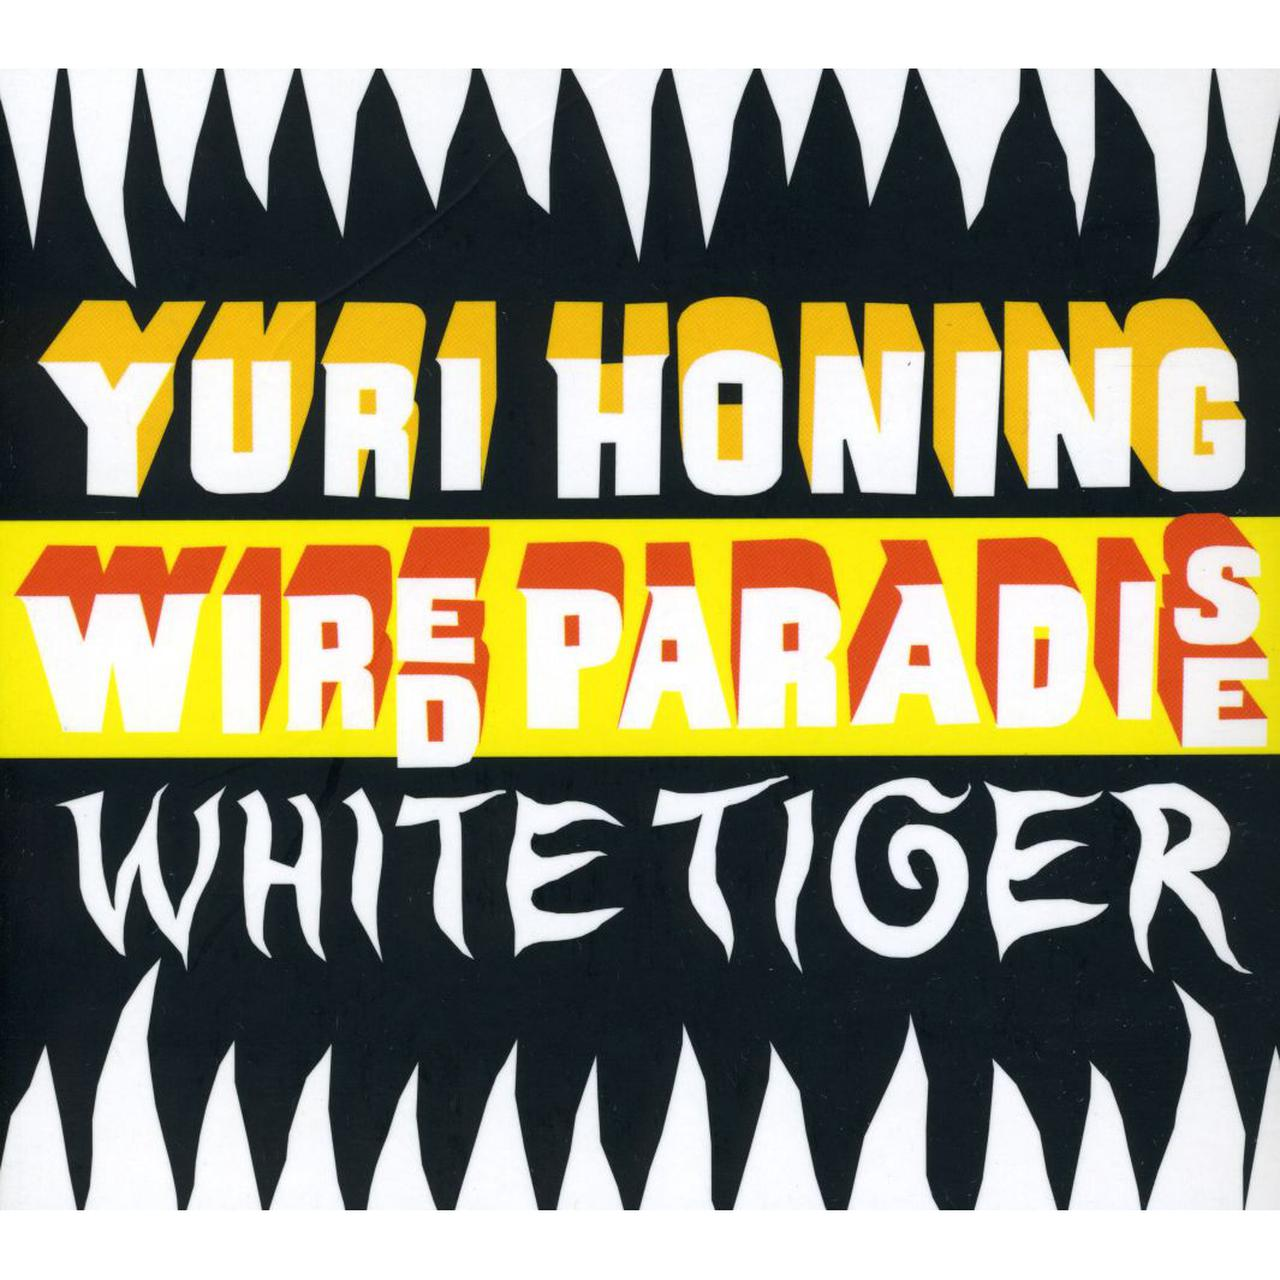 Yuri Honing Wired Paradise - White Tiger